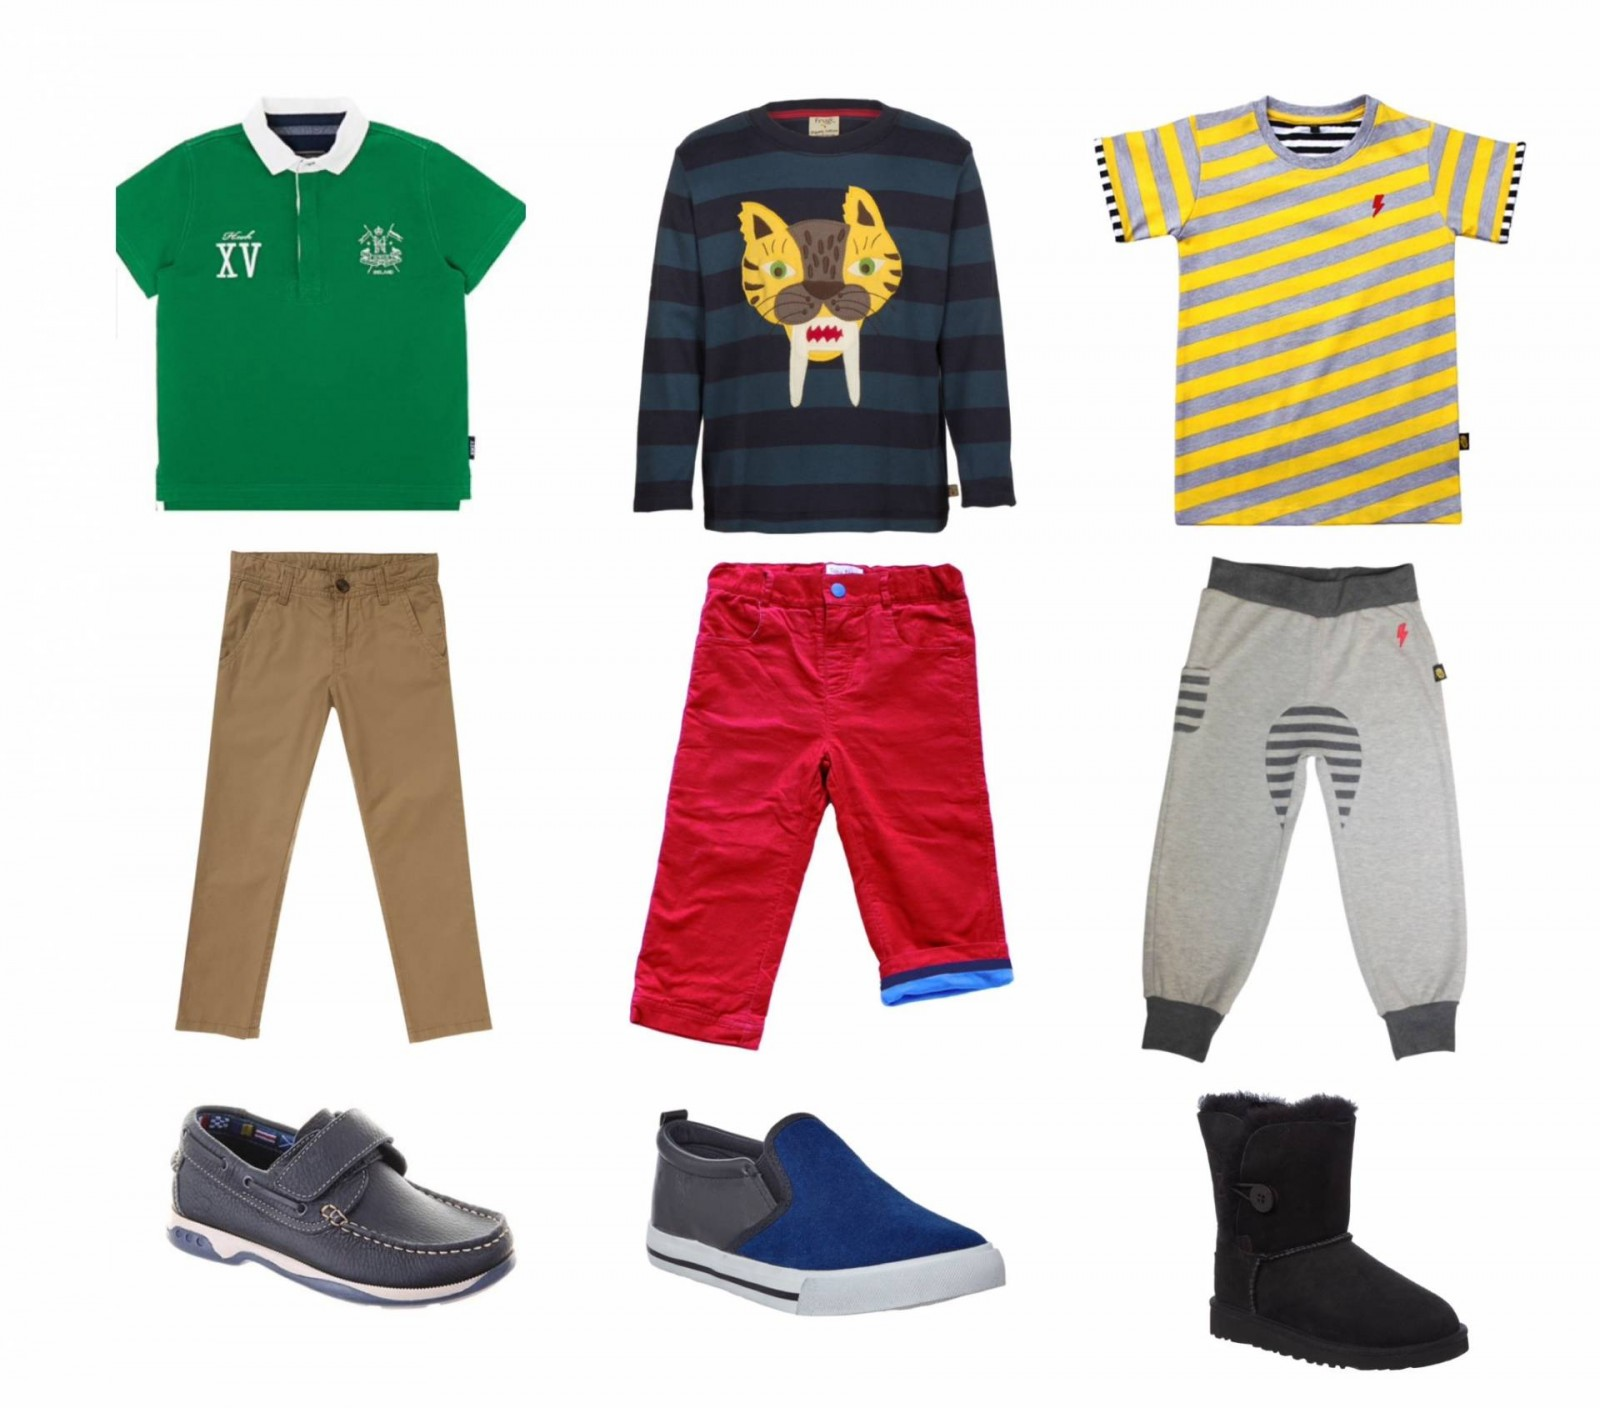 A collection of boy toddler outfits for every occasion.